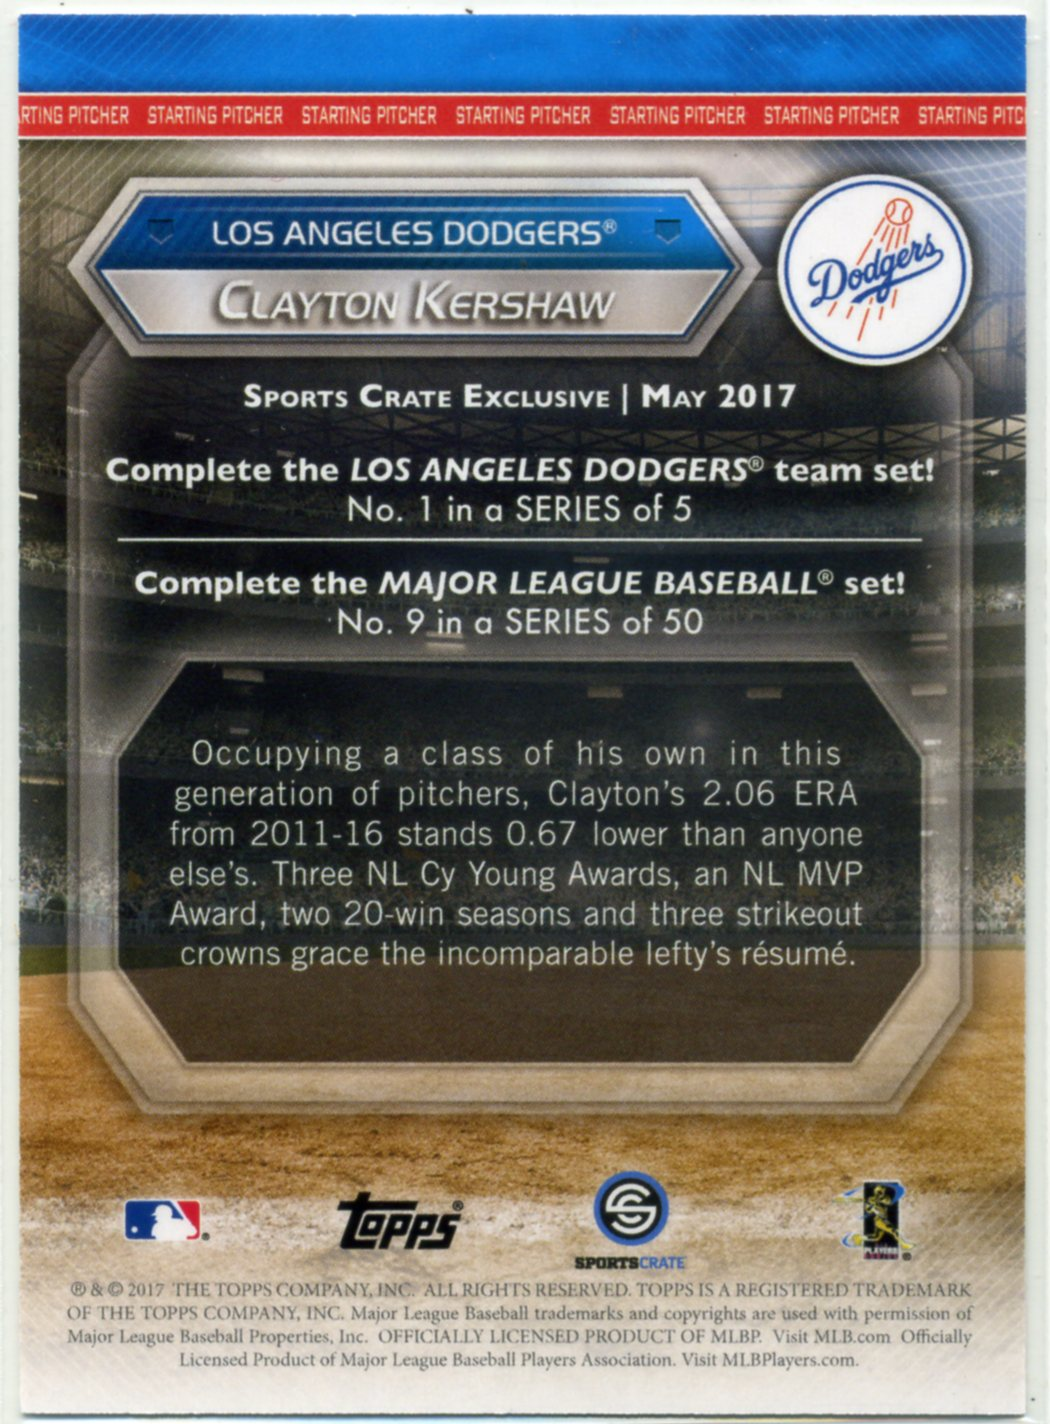 Dodgers Blue Heaven 2017 Dodgers Sports Crate May Edition